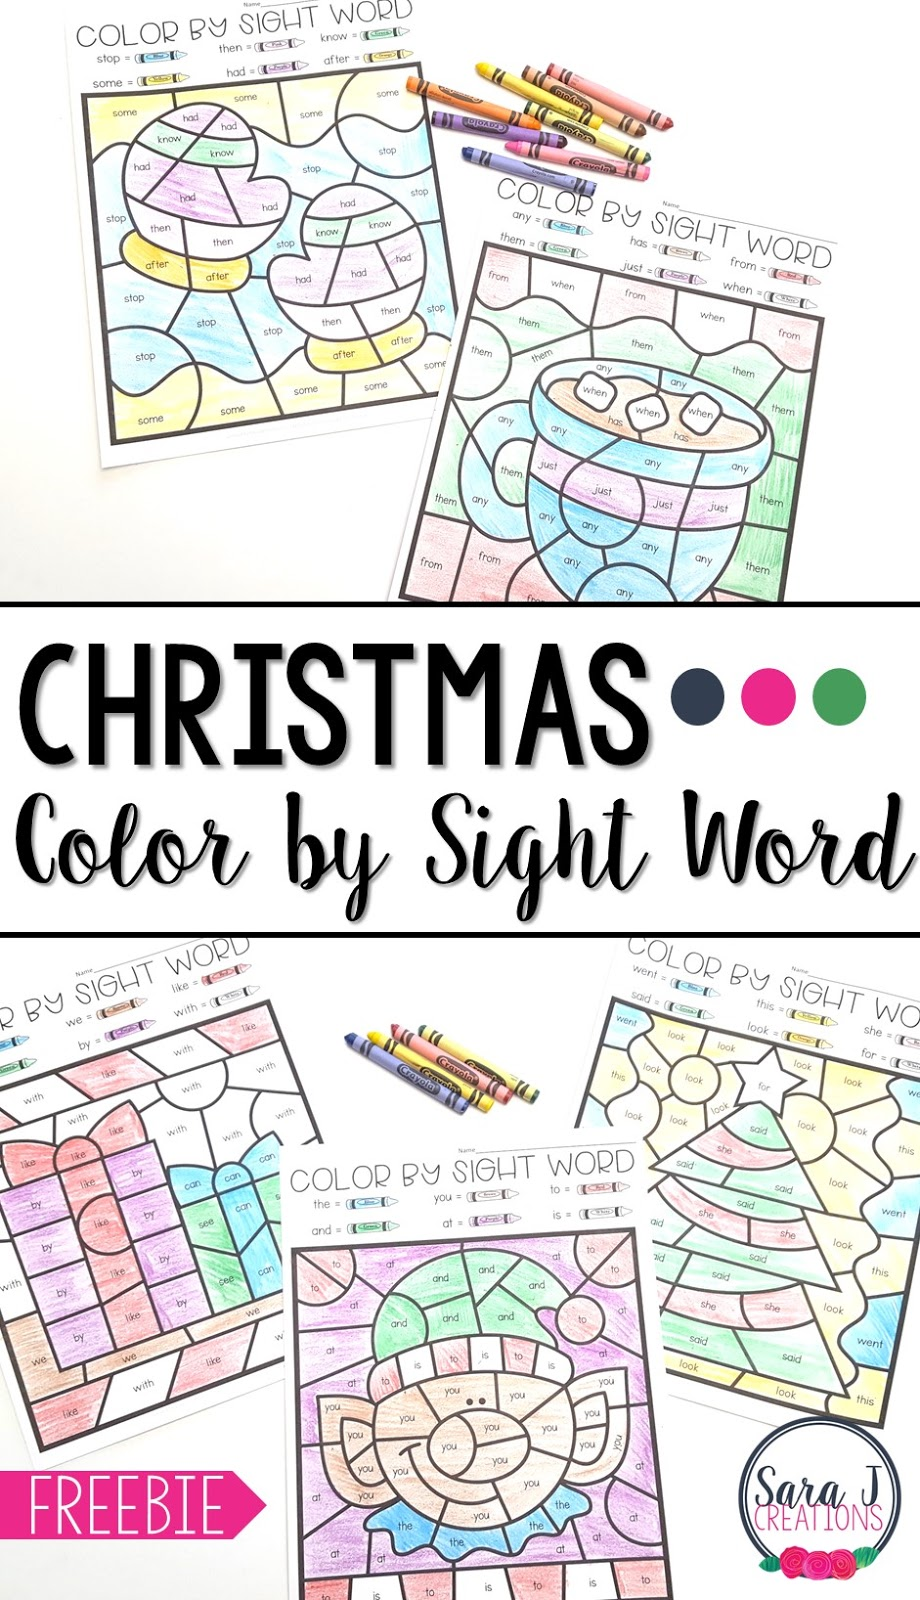 Christmas Color by Sight Word Sara J Creations